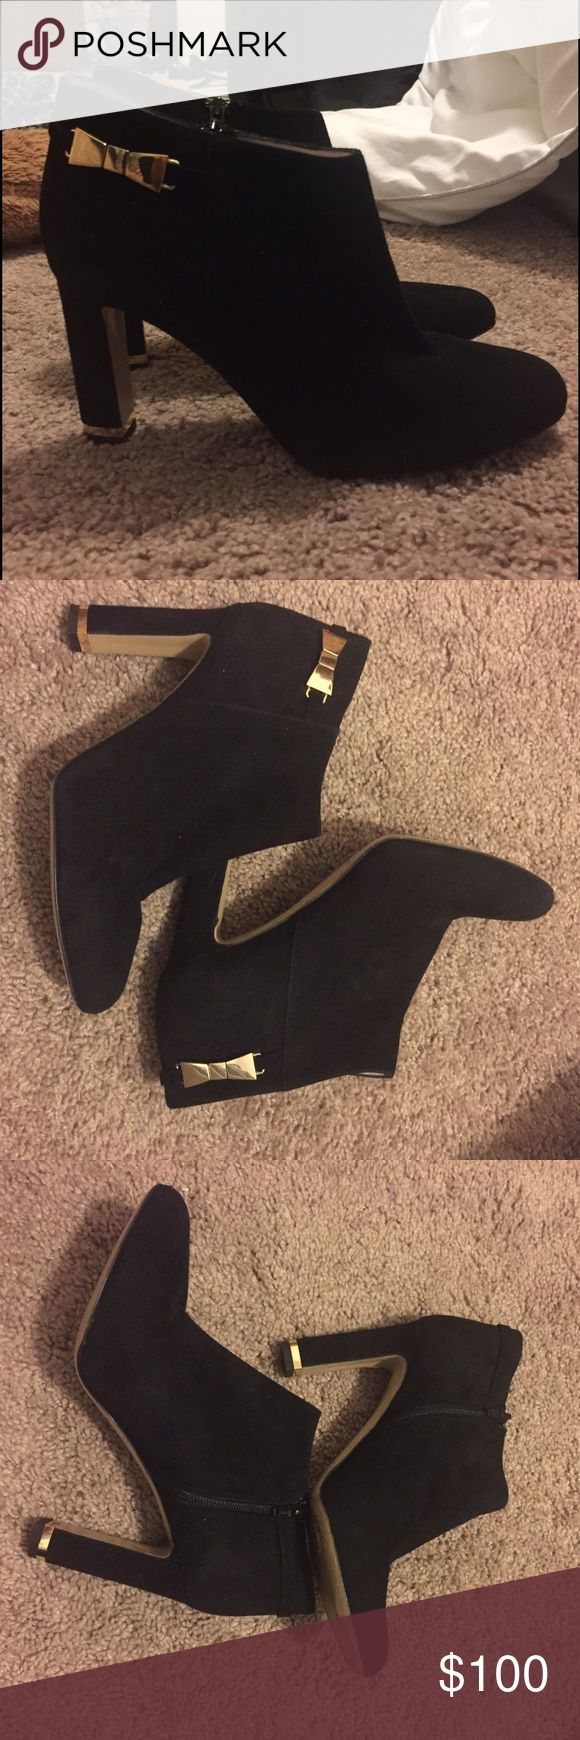 ONE DAY SALE!!! Kate Spade booties ONE DAY SALE!! These are so, so, so beautiful-- only worn once! Unfortunately I have really flat feet and can handle a large heel. The heel is about 4 inches. Open to reasonable offers!! kate spade Shoes Ankle Boots & Booties